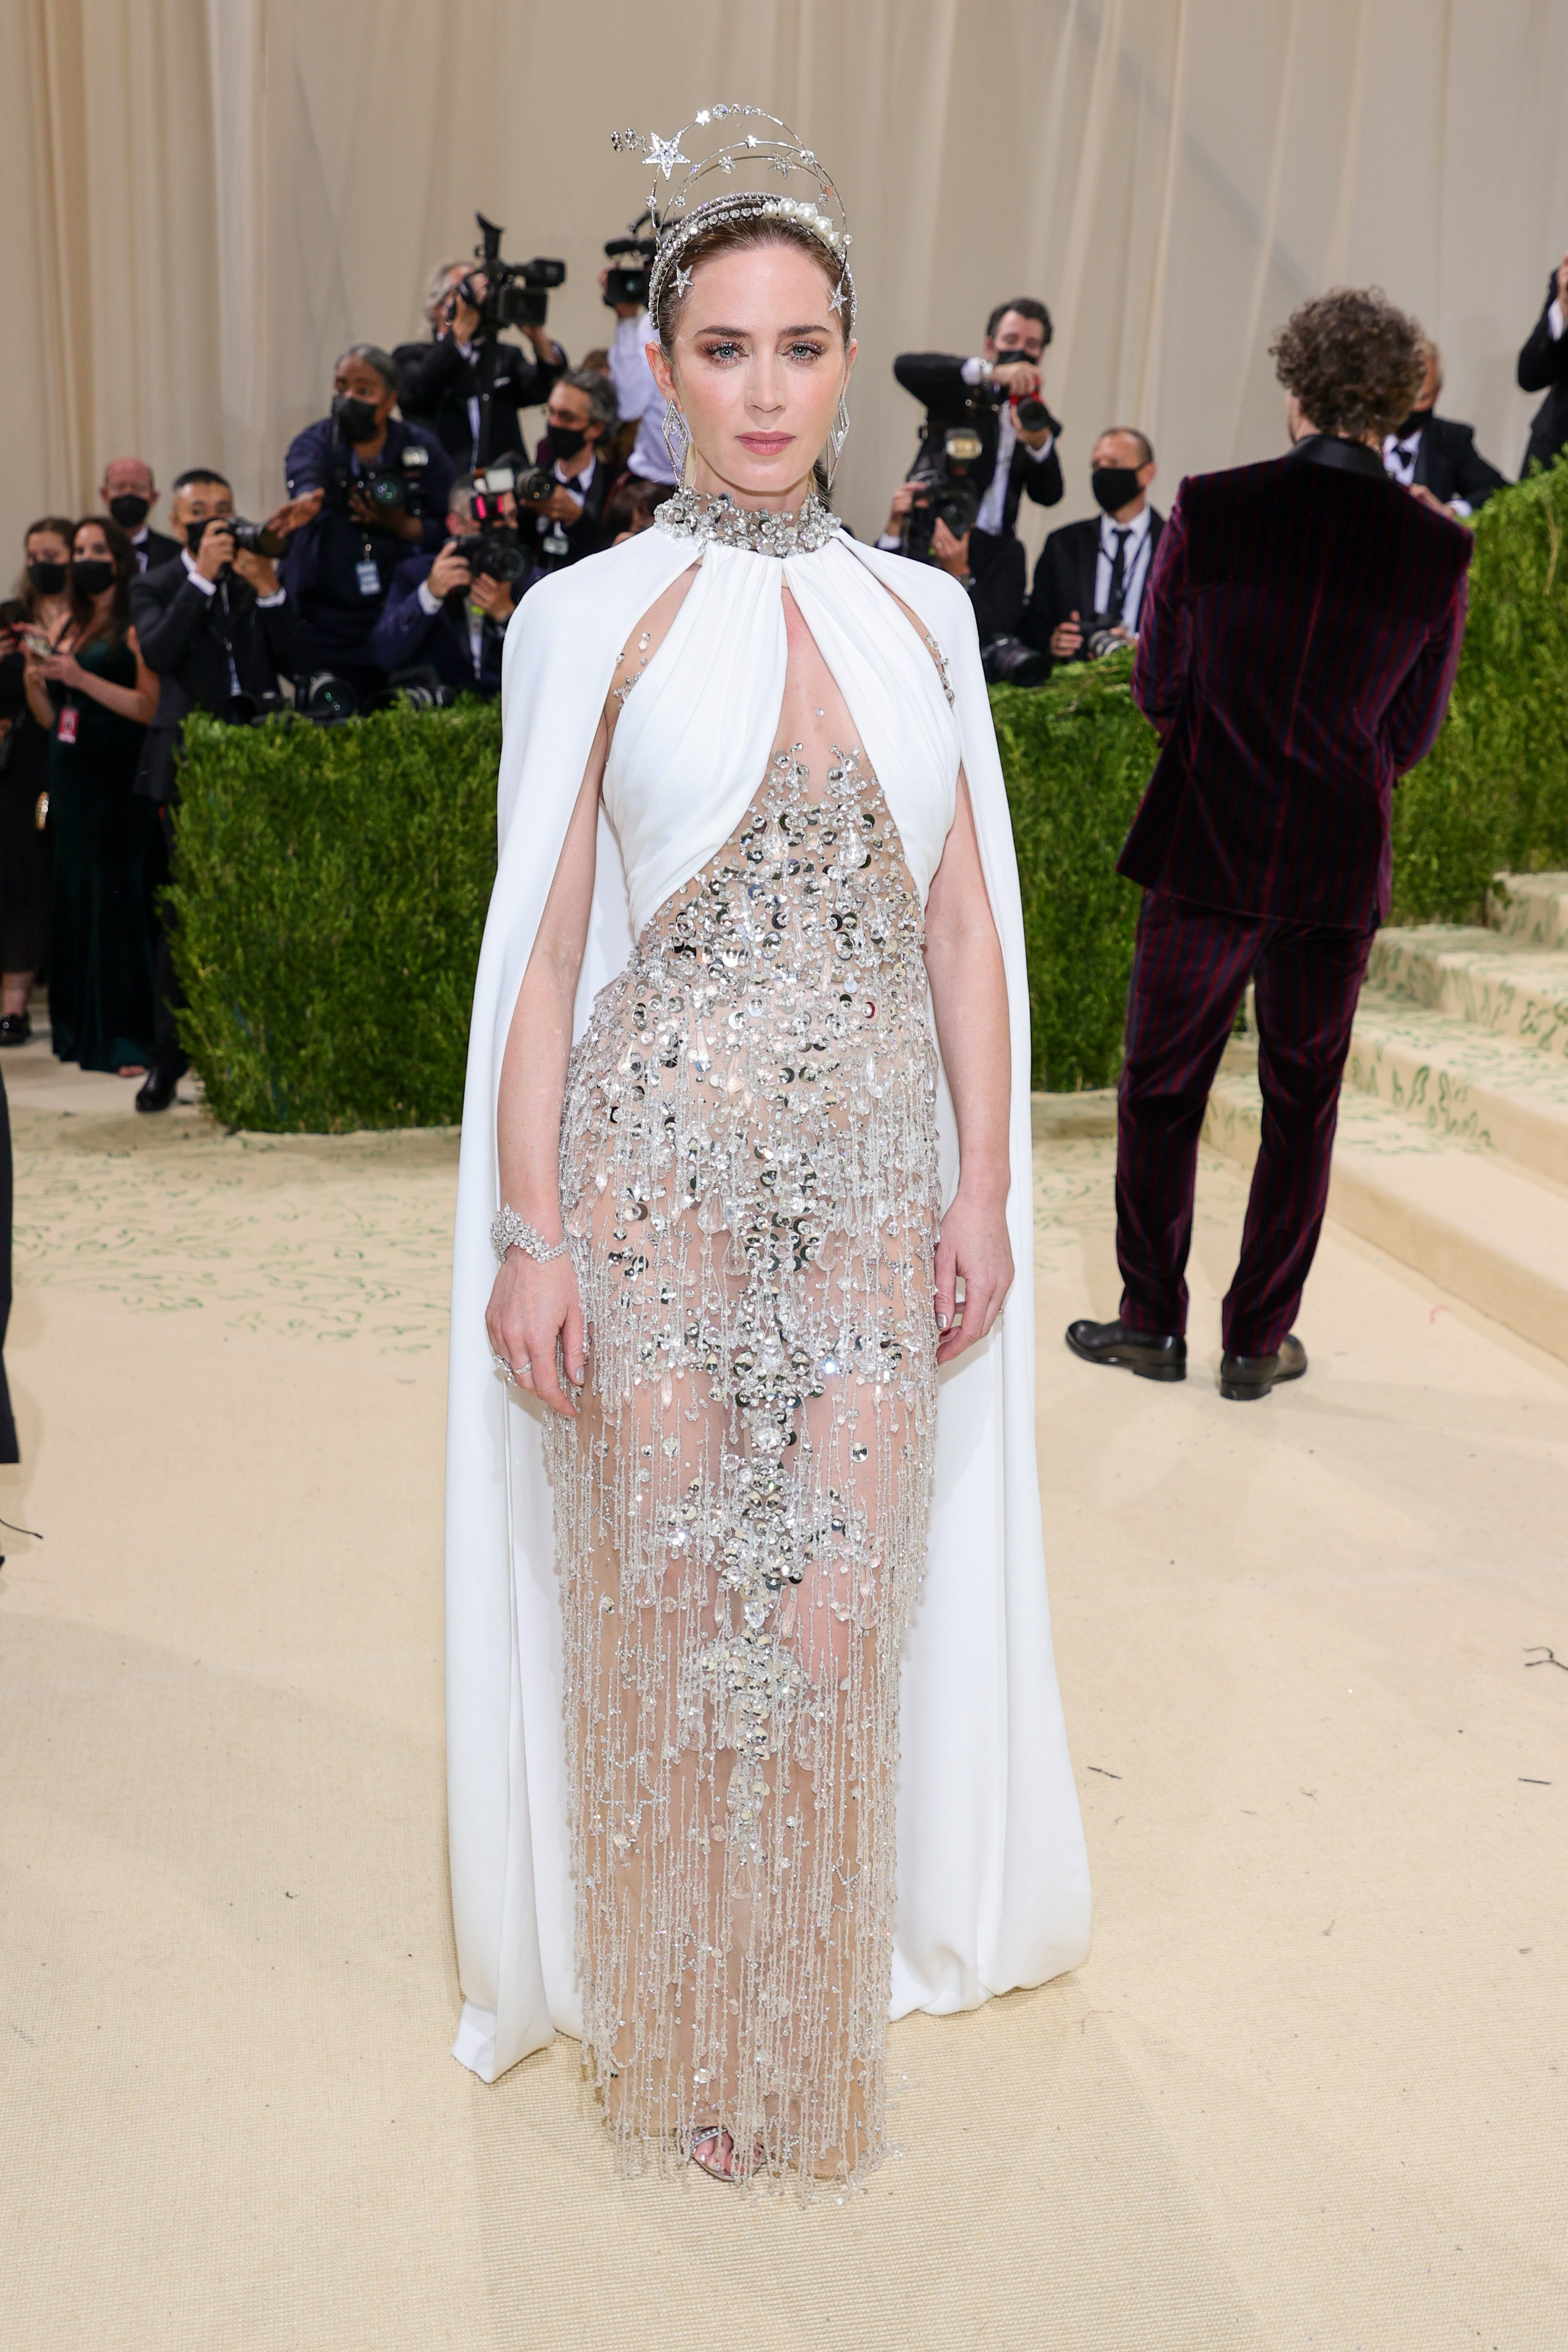 NEW YORK, NEW YORK - SEPTEMBER 13: Emily Blunt attends The 2021 Met Gala Celebrating In America: A Lexicon Of Fashion at Metropolitan Museum of Art on September 13, 2021 in New York City. (Photo by Theo Wargo/Getty Images) (Foto: Getty Images)